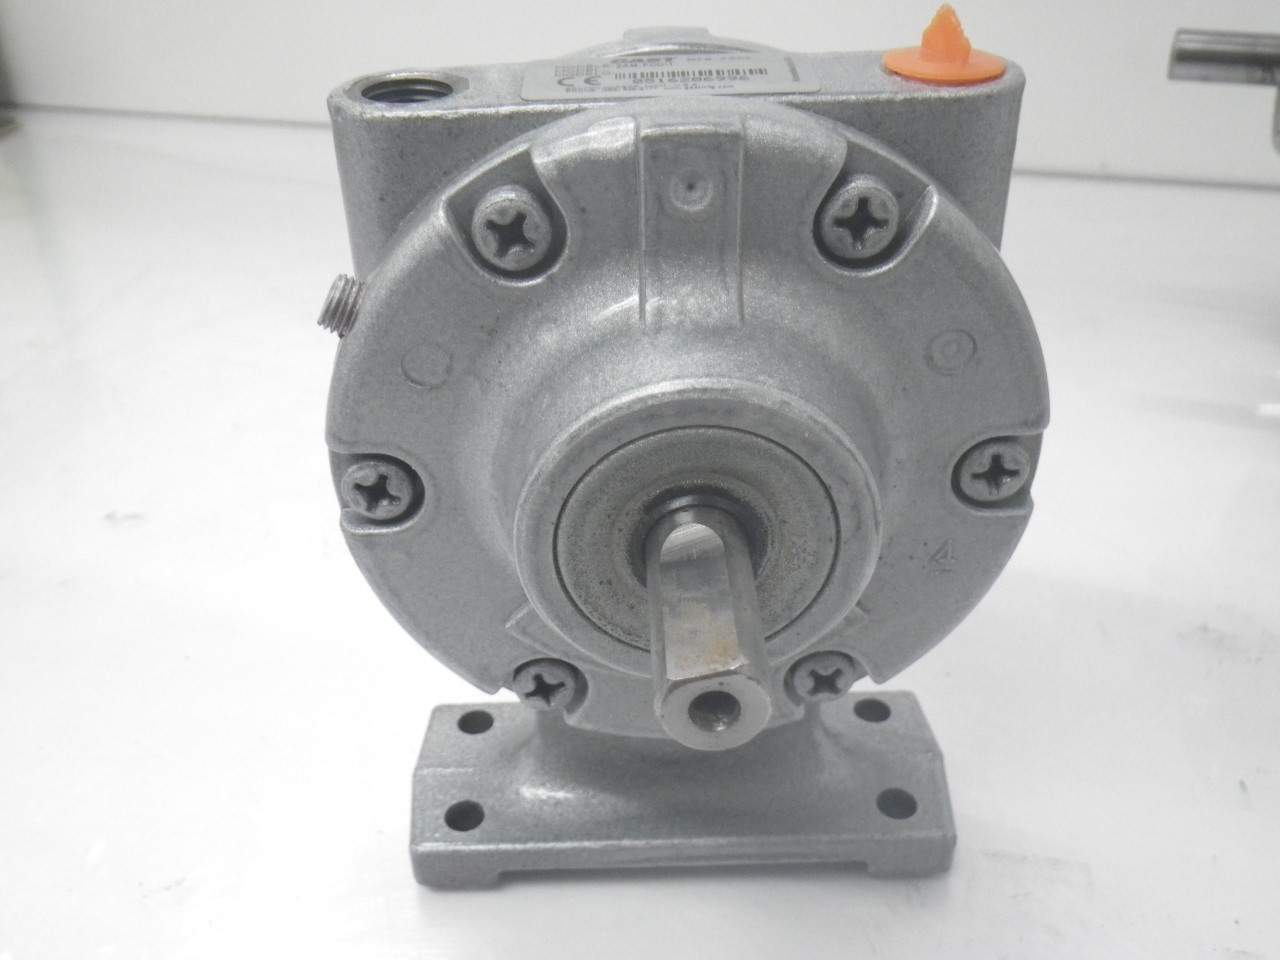 IMGP11832AM-FCC-1 Gast Air Motor (Used Tested) (Very Good Condition) (13)